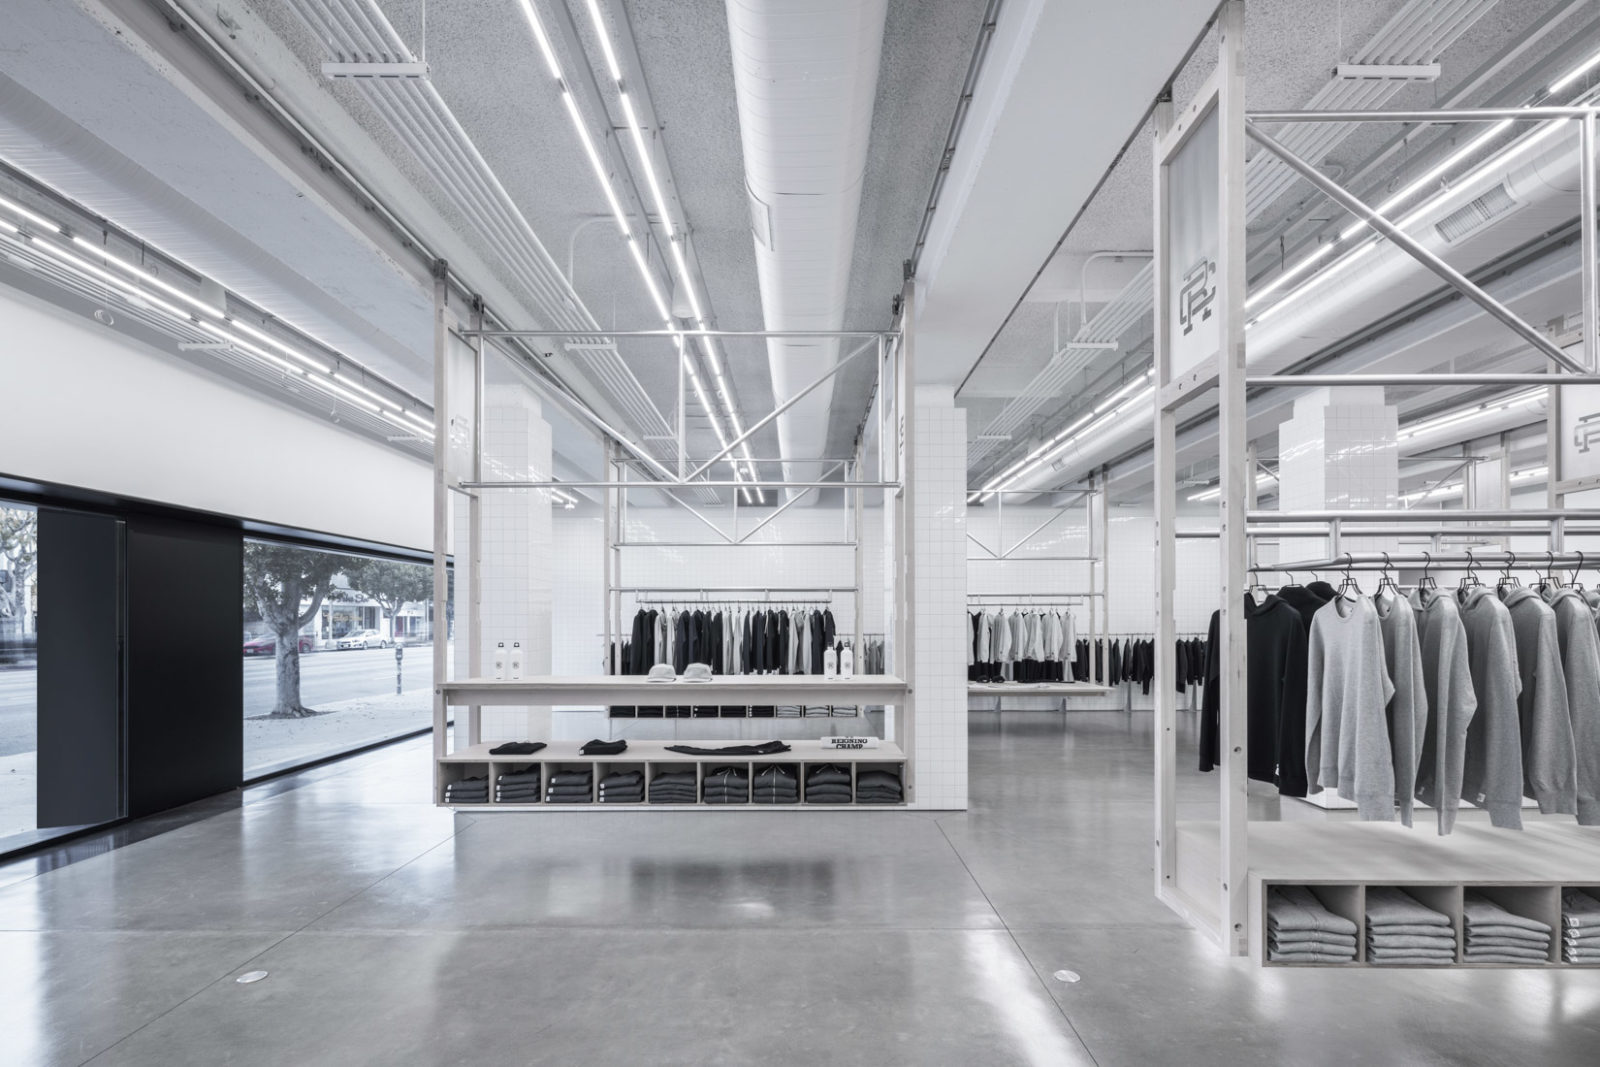 Reigning Champ La Brea Los Angeles